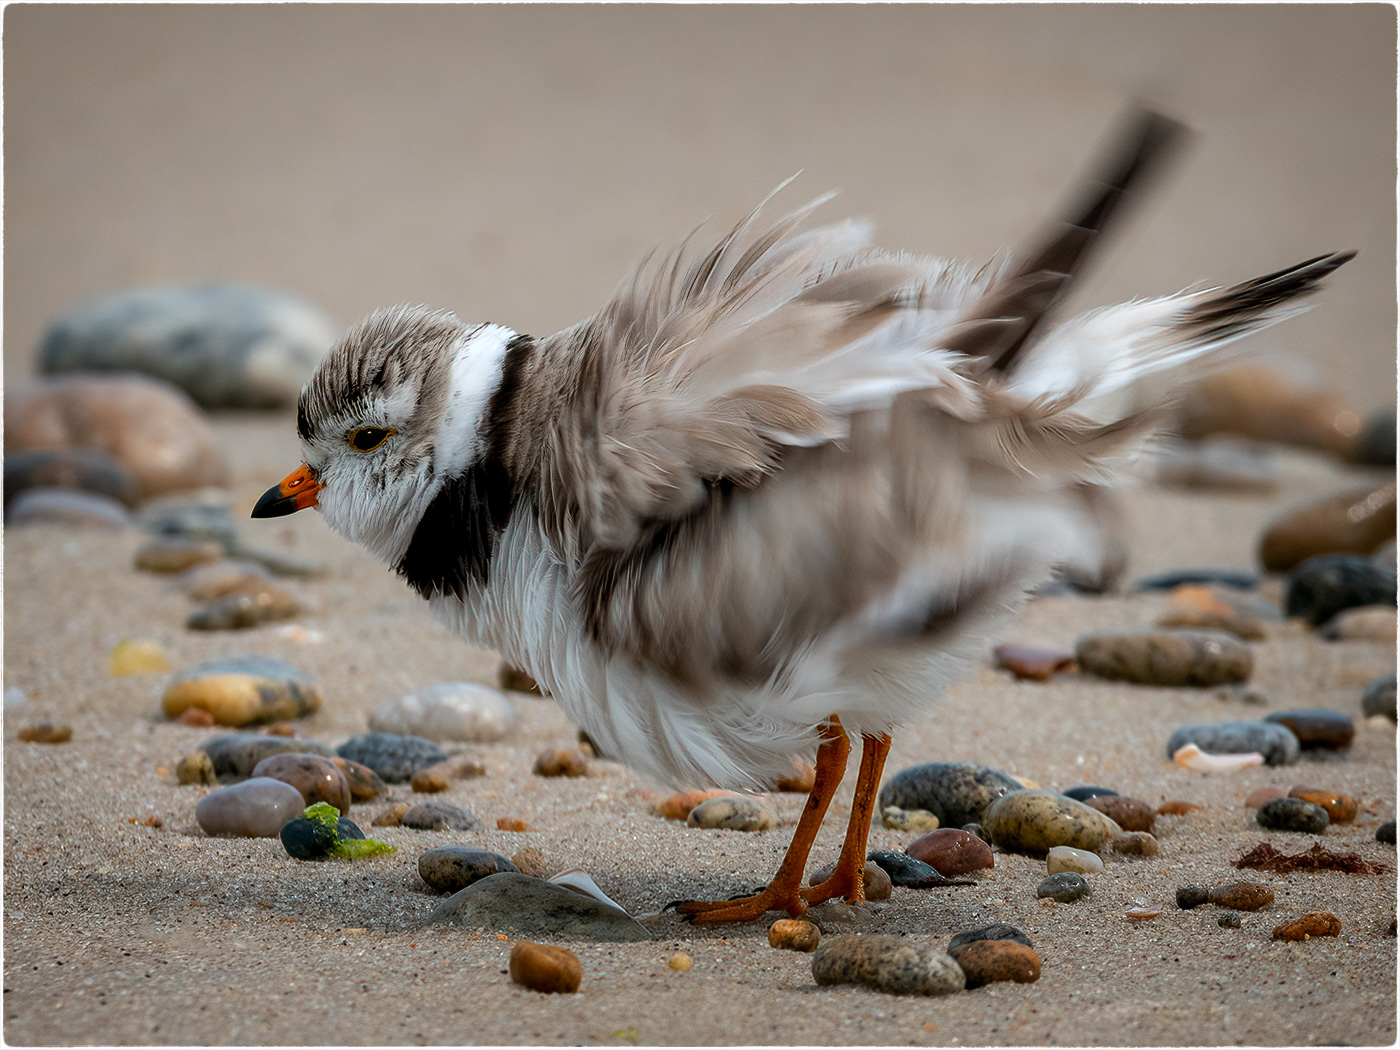 Plover shaking his feathers after taking a dip in the water along the shoreline